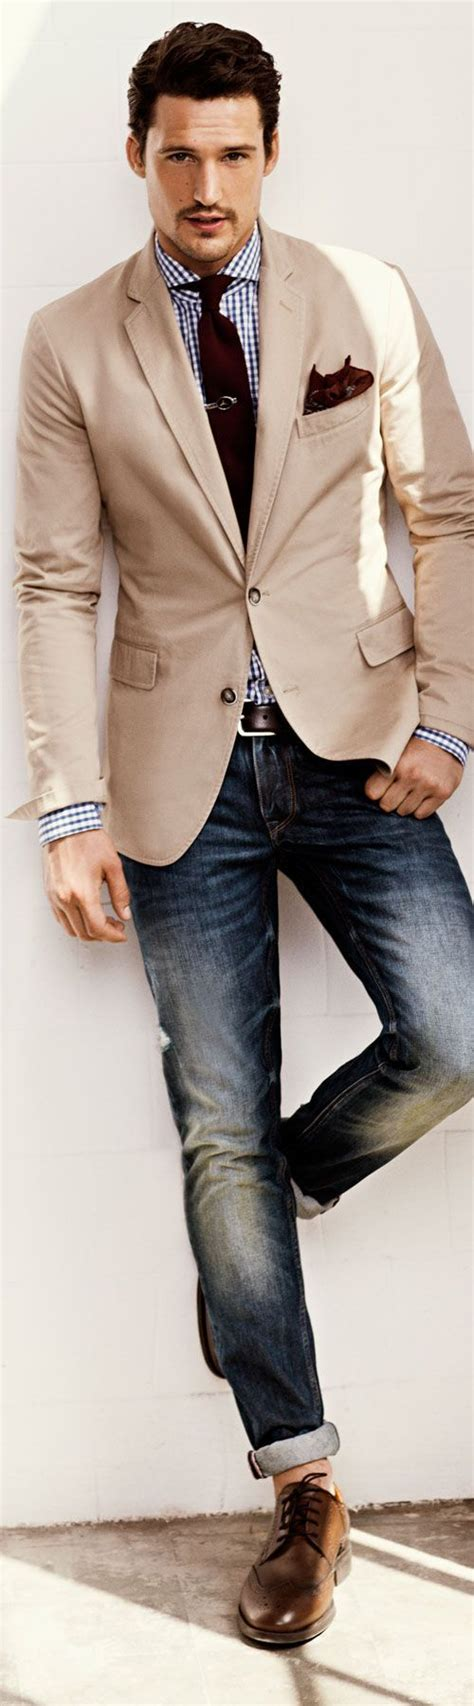 how to wear a blazer jacket with jeans mens style guide wearing suit jacket with jeans mens suits tips